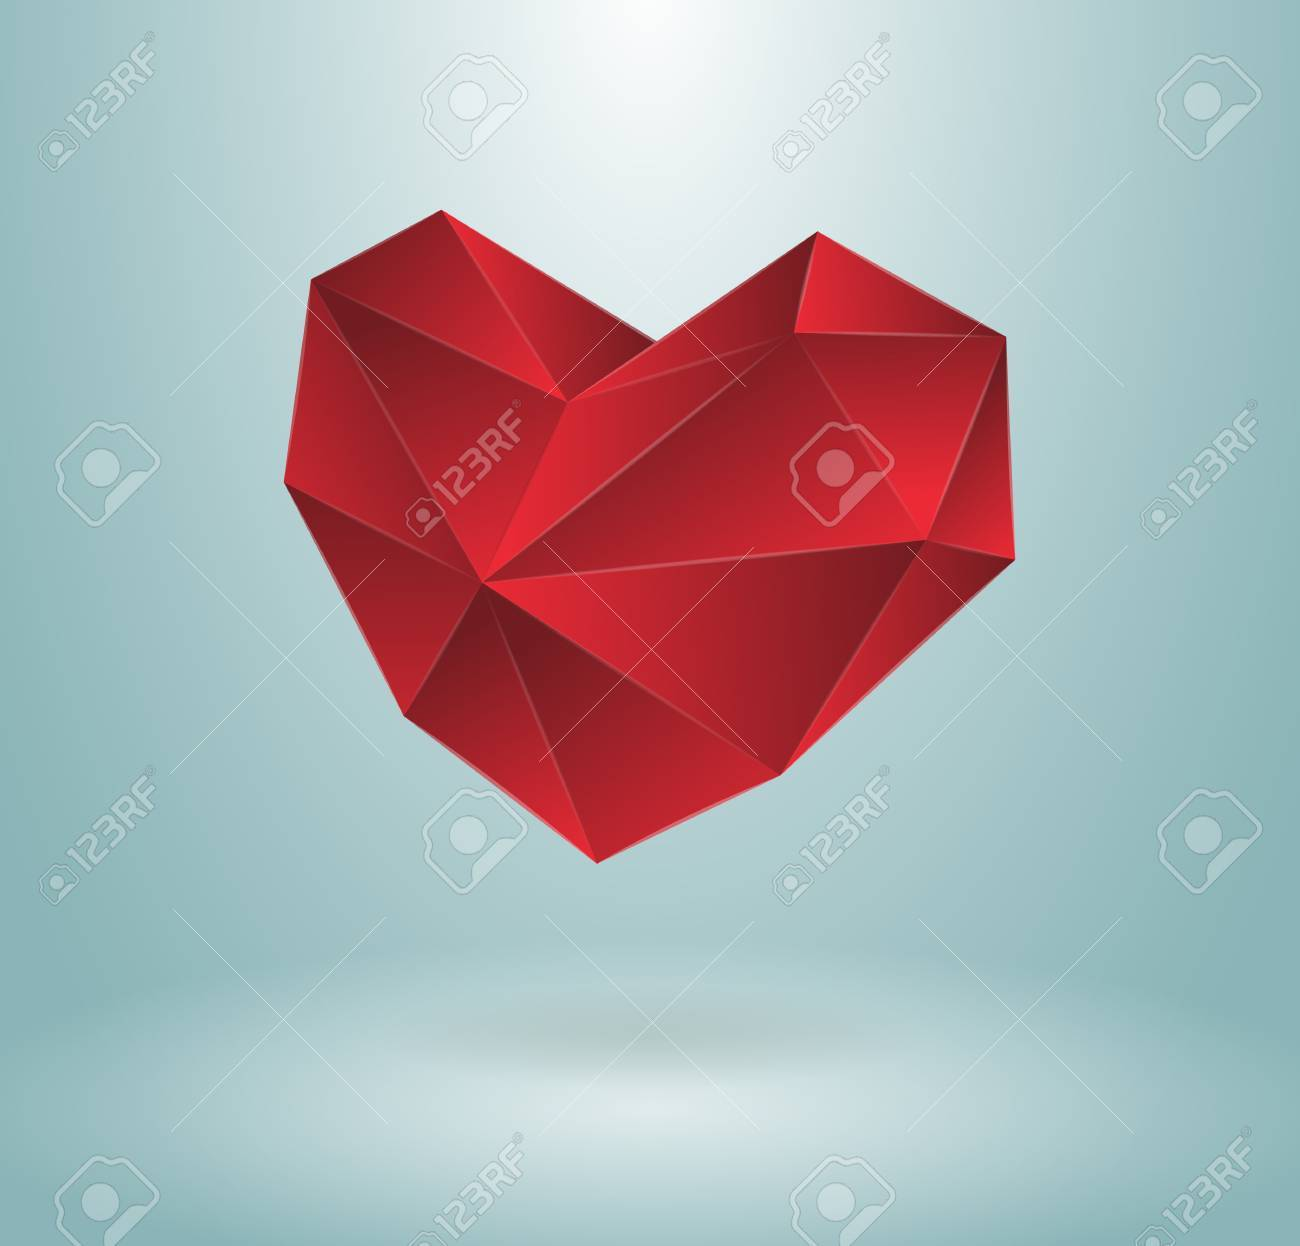 Heart concept, editable, isolated or maybe used with background Stock Vector - 16956229